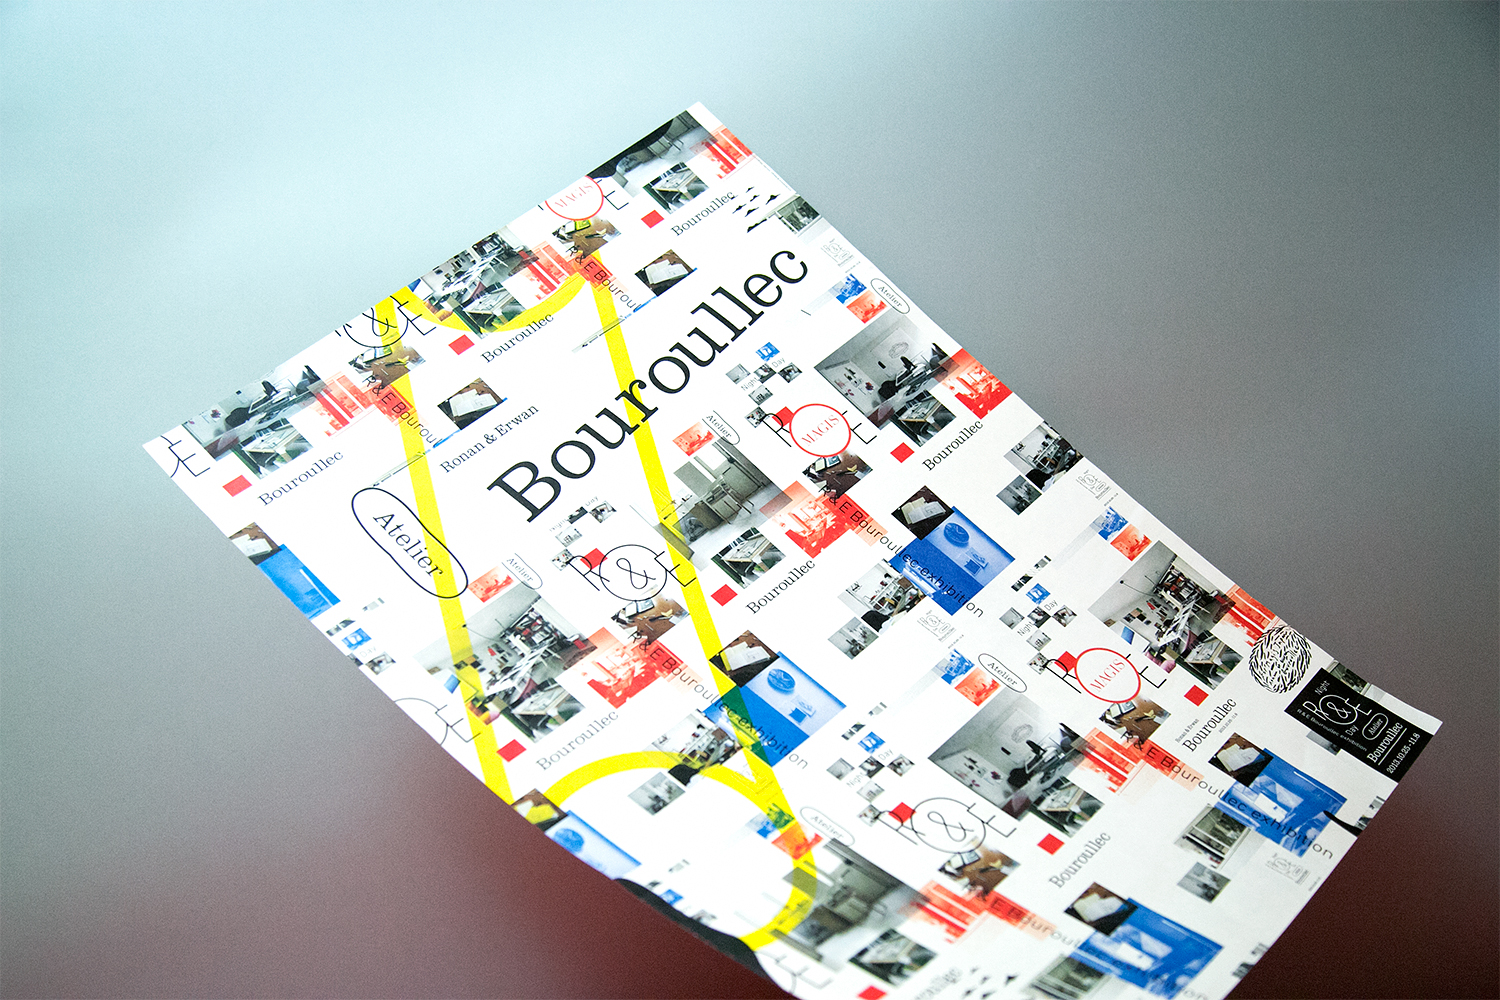 r_b_bouroullec_007